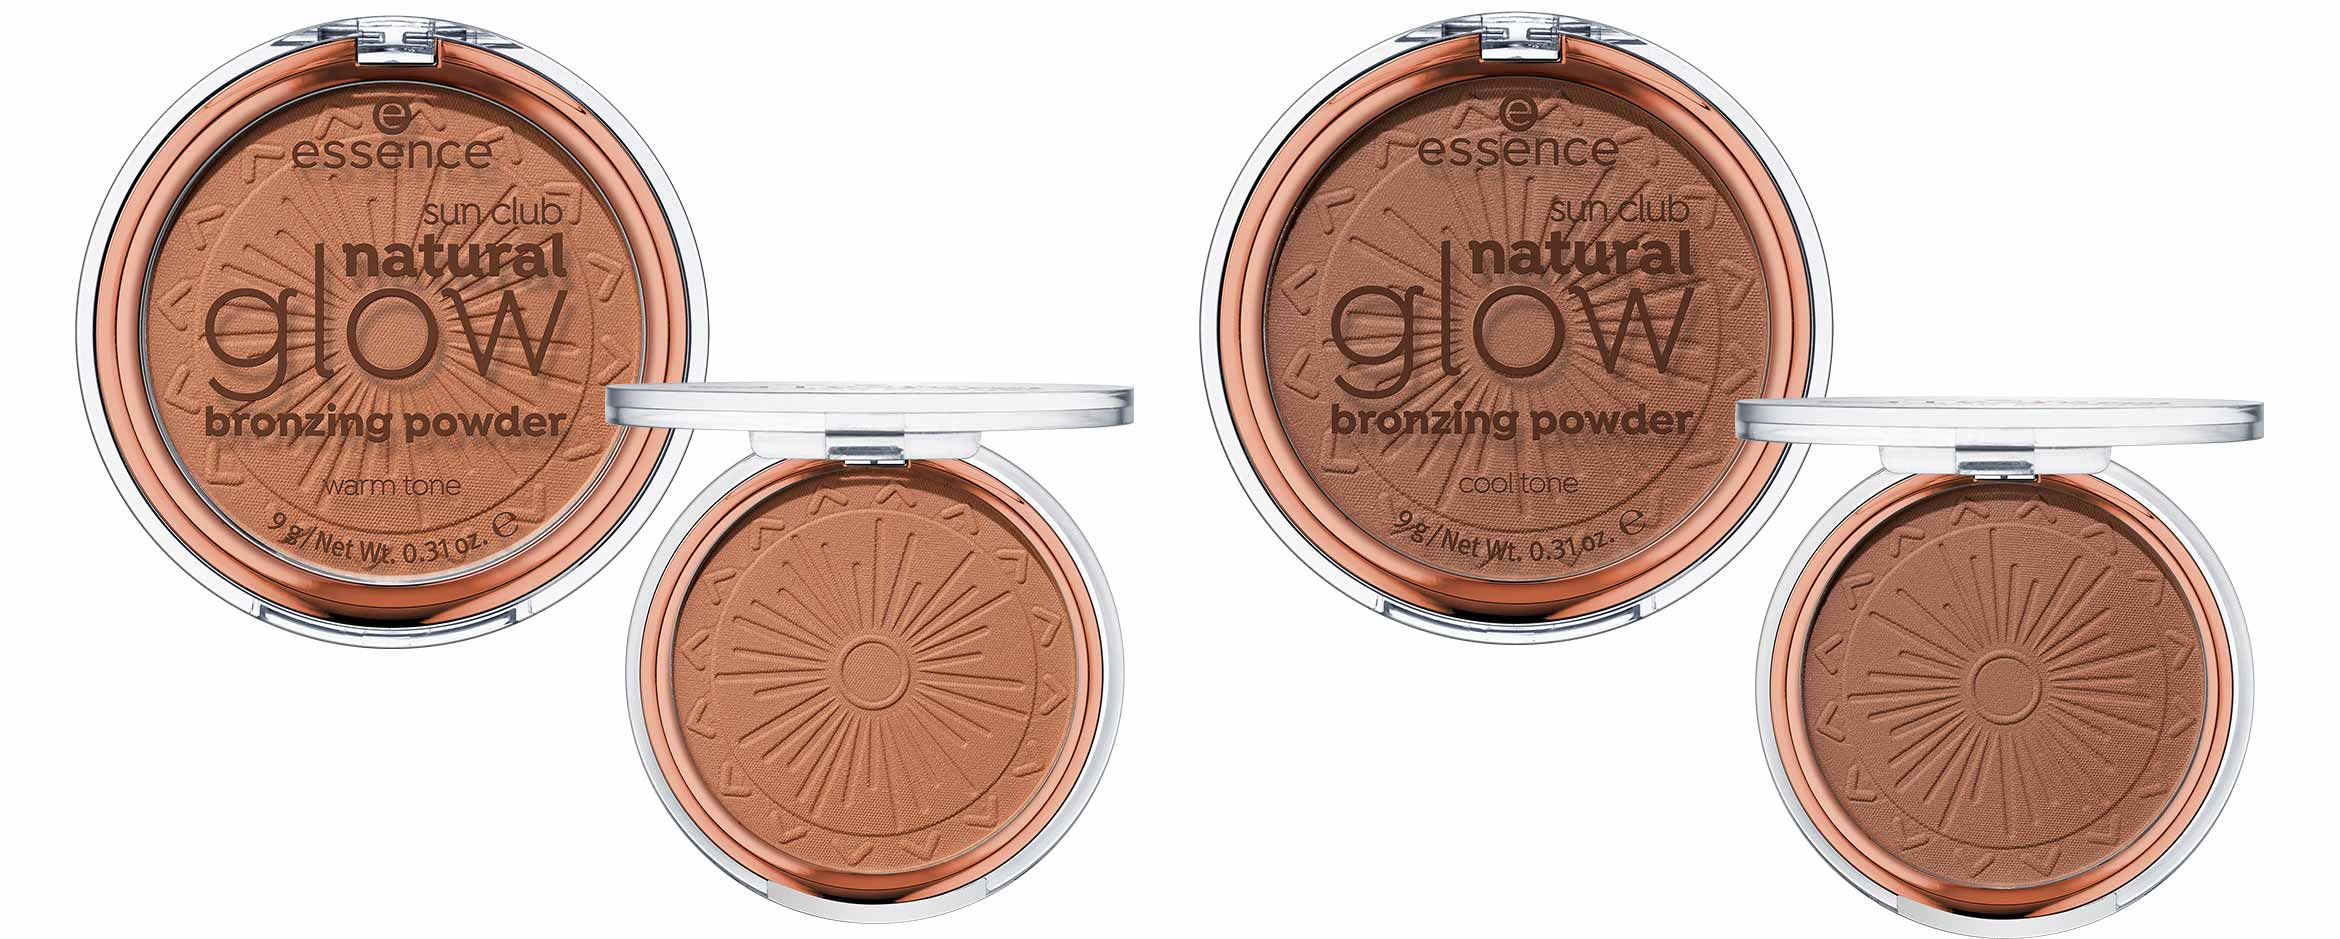 essence sun club natural glow bronzing powder